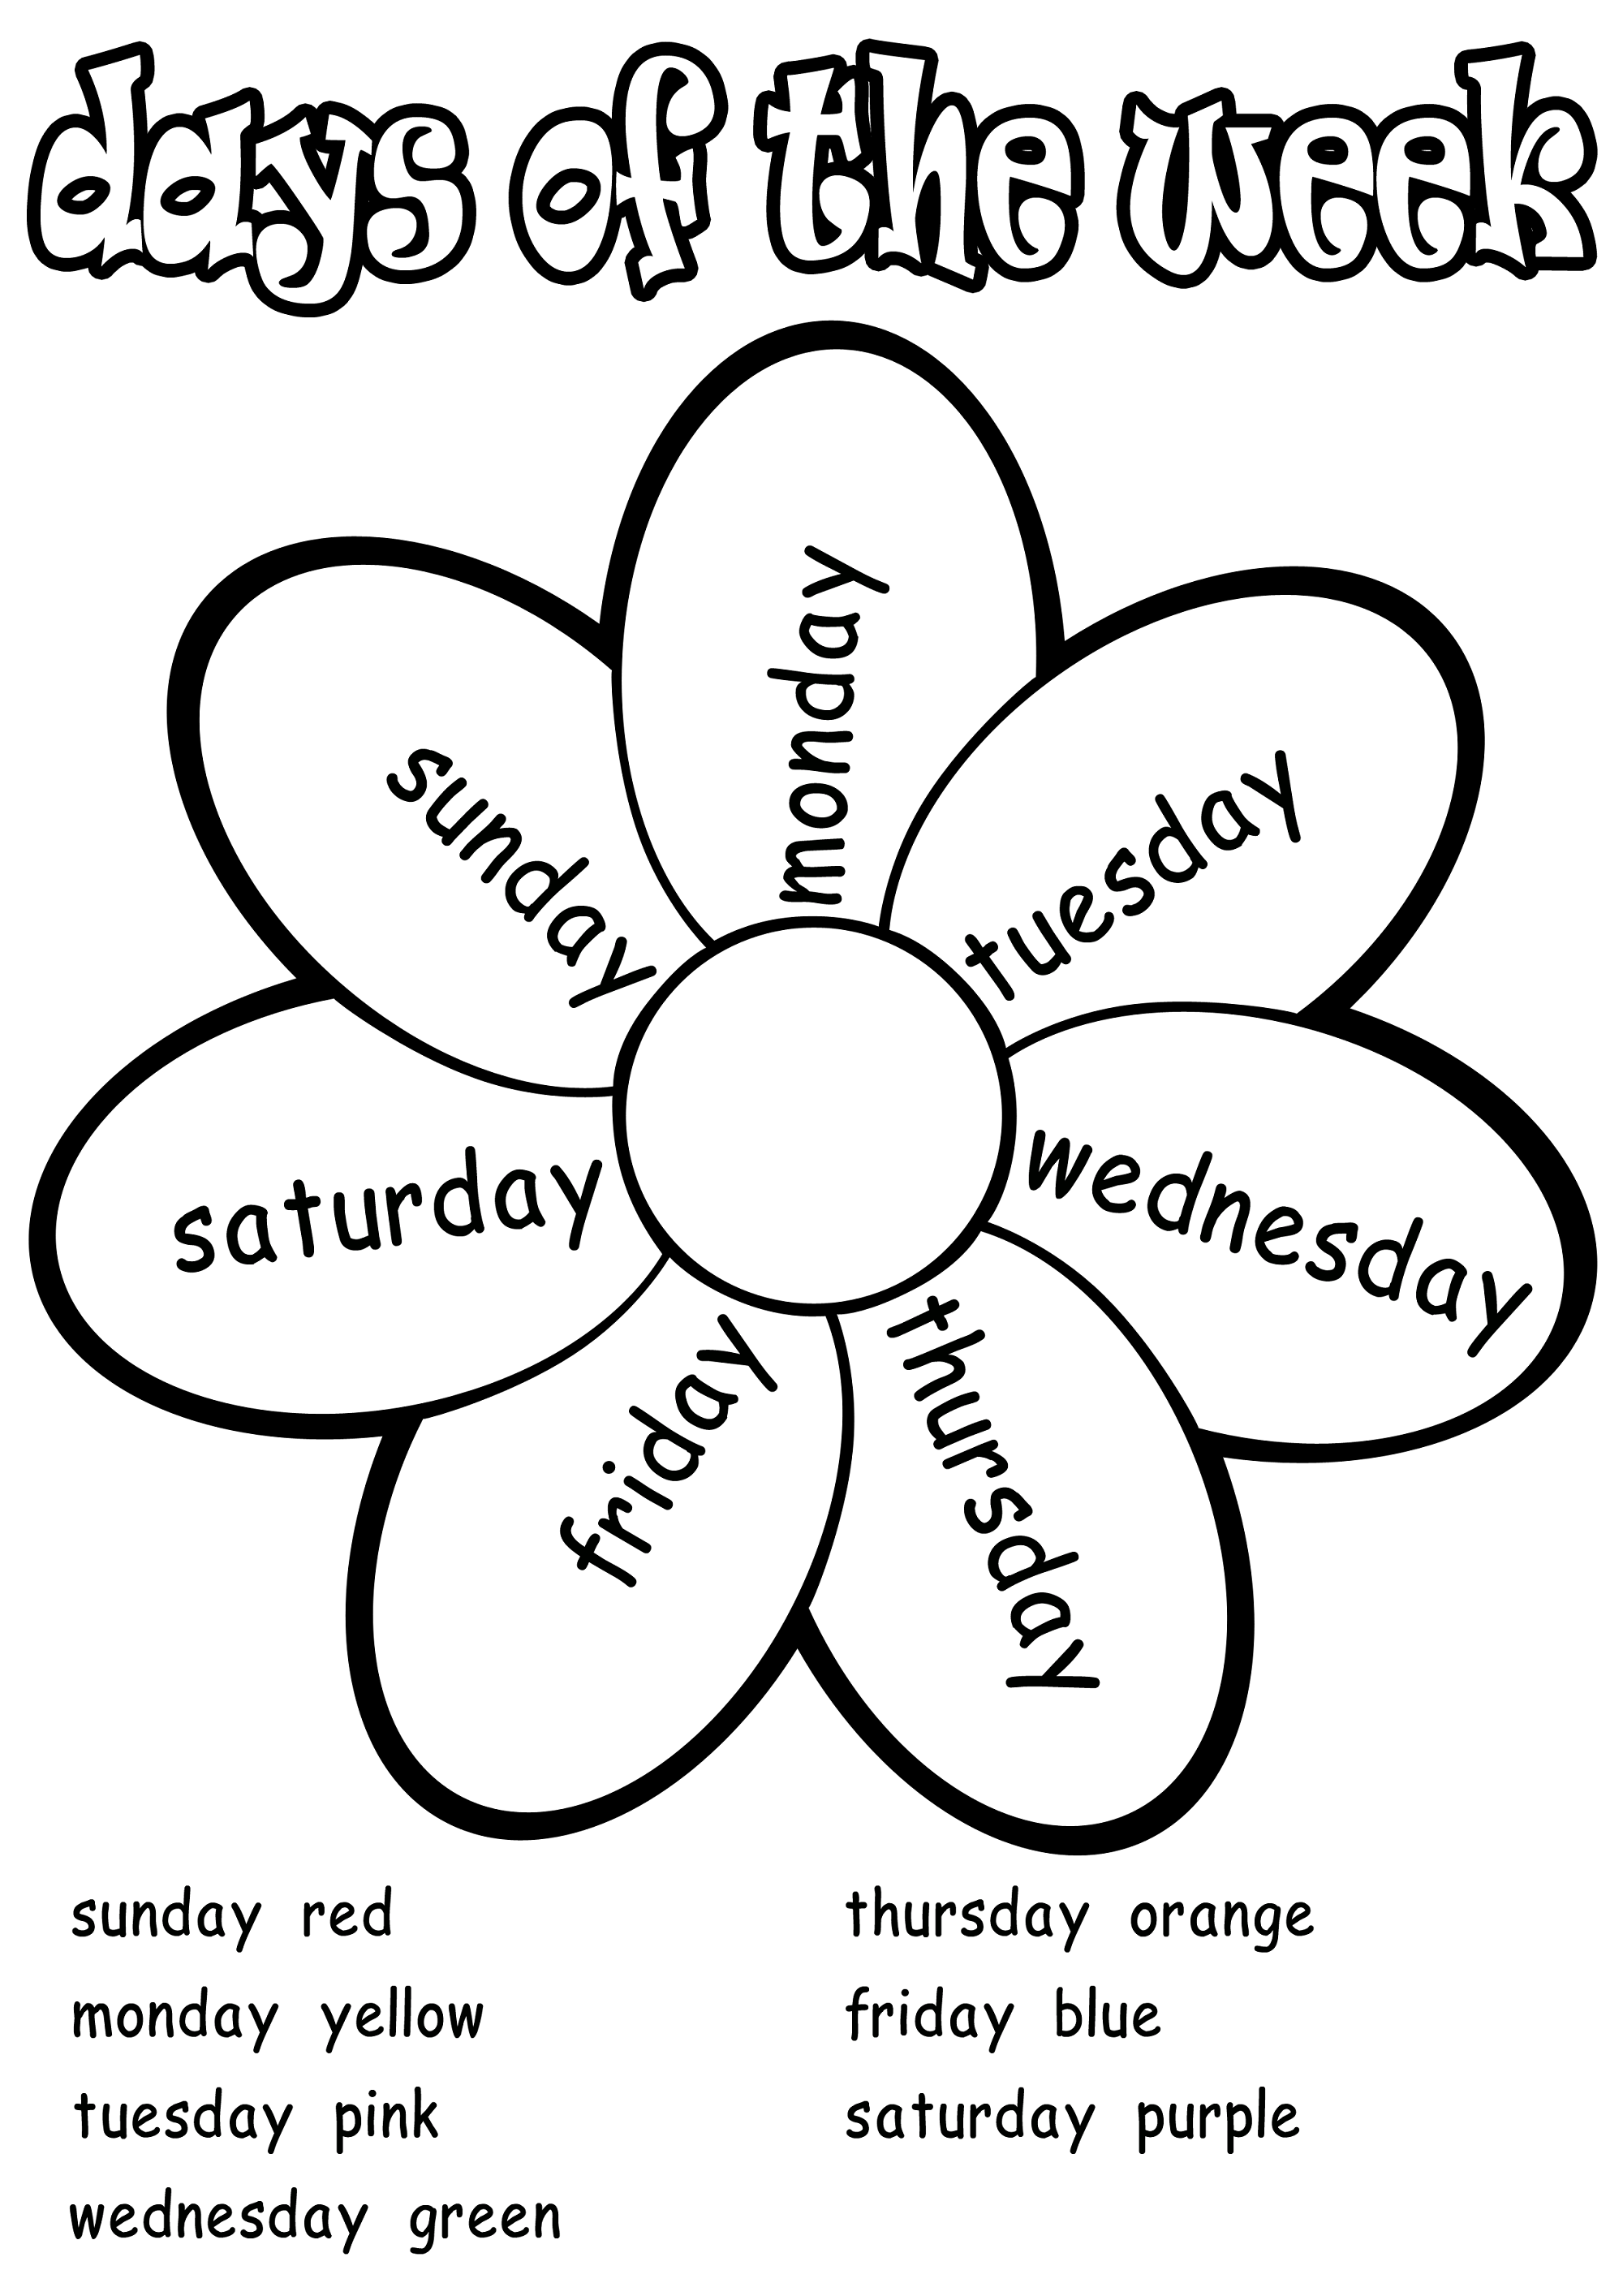 Worksheet For Days Of The Week For Kids English Activities For Kids English Lessons For Kids English Worksheets For Kids